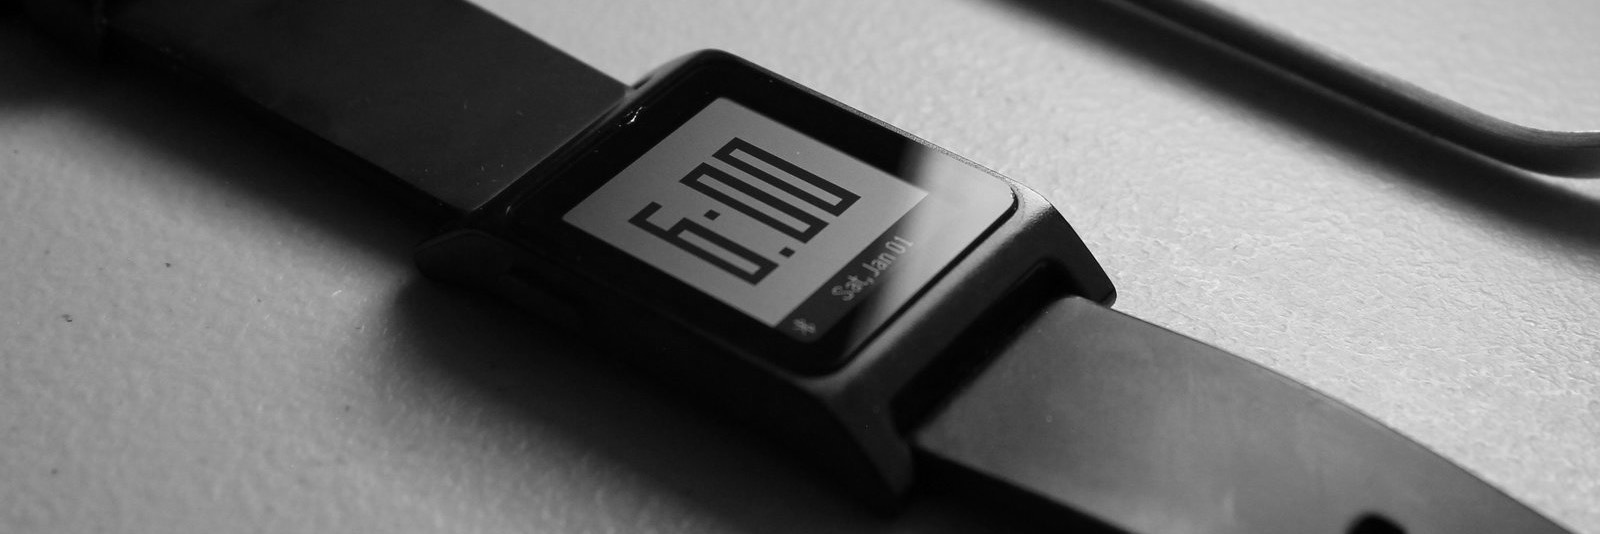 Rebble with a Cause: How Pebble Watches Were Granted an Amazing Afterlife